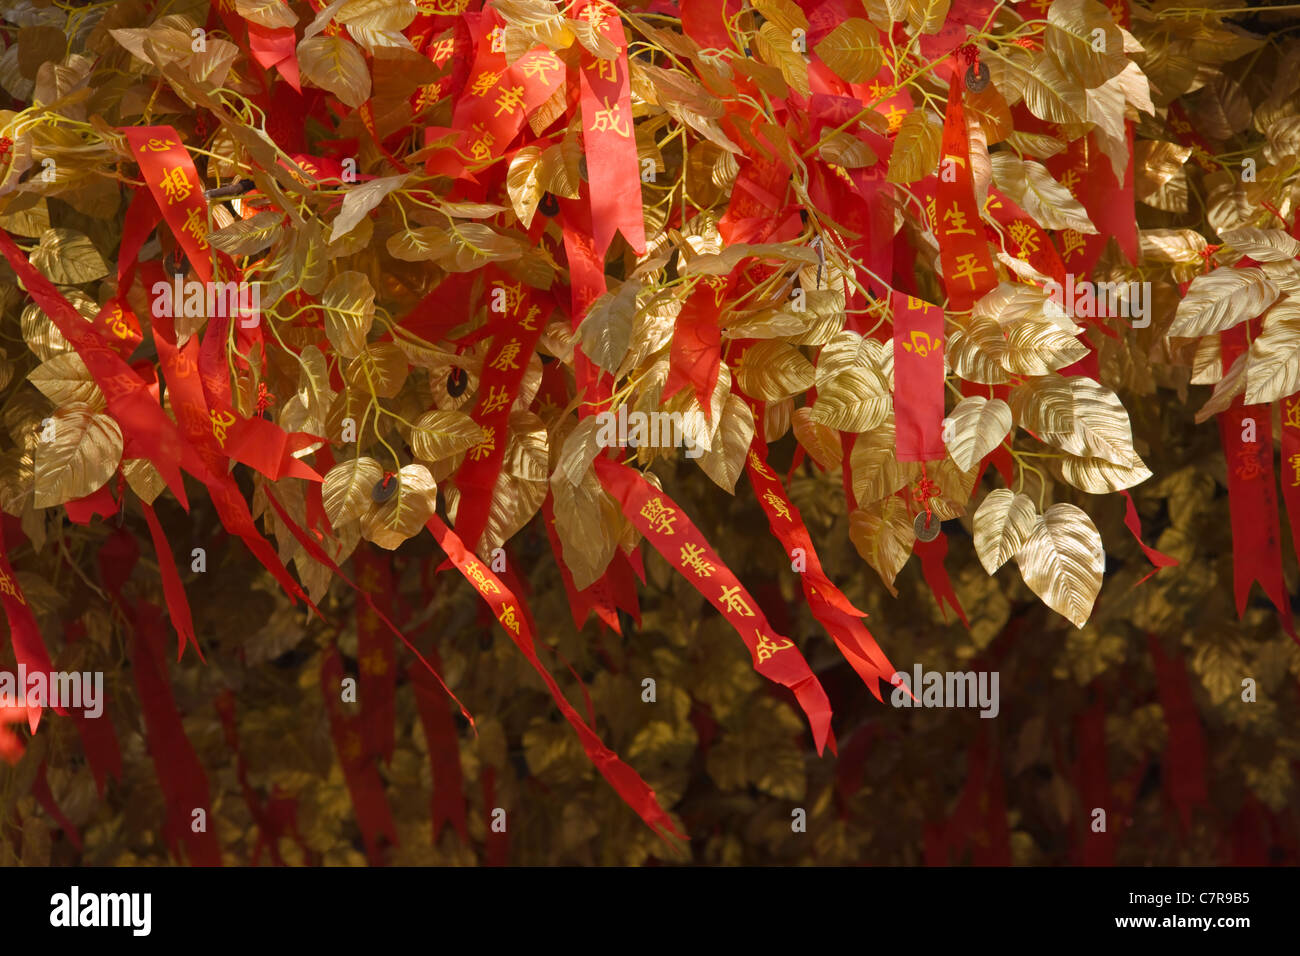 Goldene Uhr Stock Photos Goldene Uhr Stock Images Alamy Wunsch Stockfotos And Wunsch Bilder Alamy